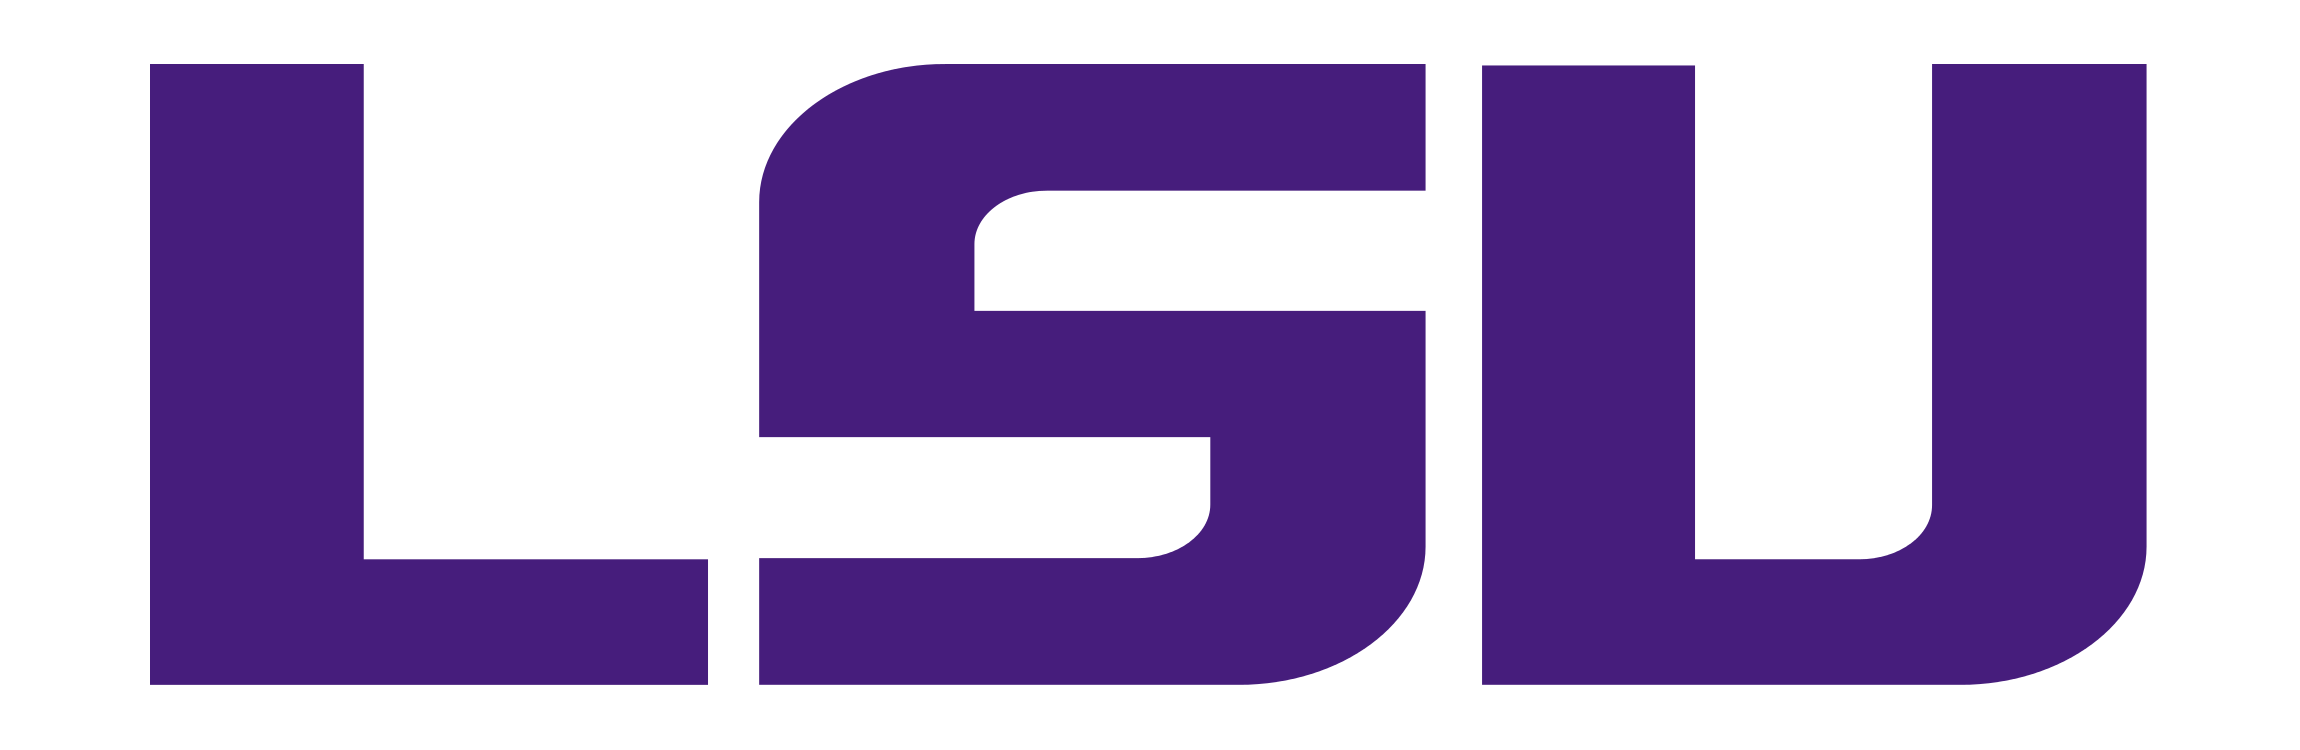 lsu logo lsu symbol meaning history and evolution rh 1000logos net lsu logos and designs lsu logos downloads